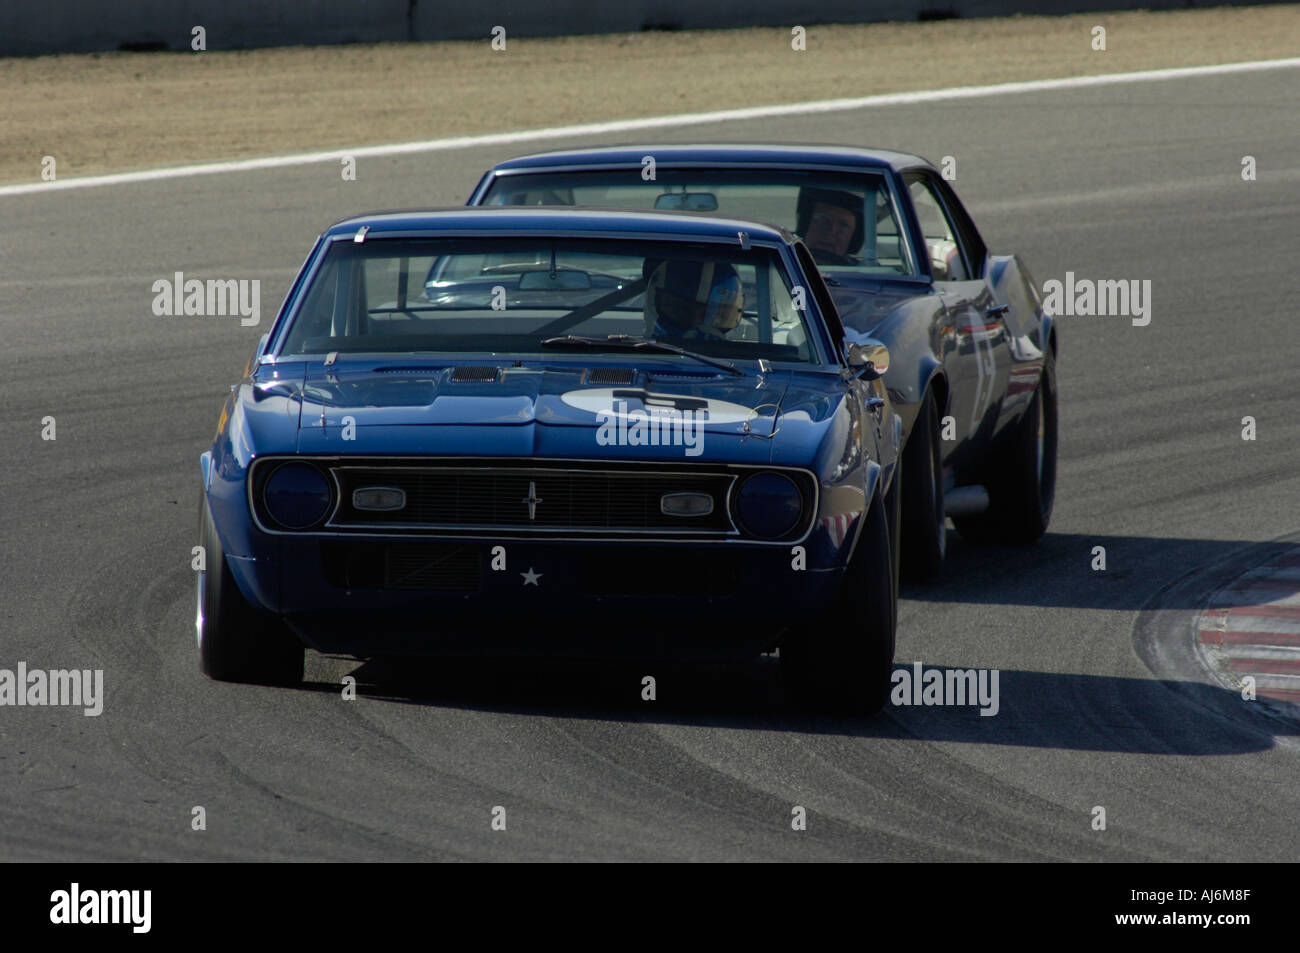 Chevrolet Camaro Z28 Stock Photos 1968 Z 28 Tom Armstrong Races His Chevy At The 32nd Rolex Monterey Historic Automobile